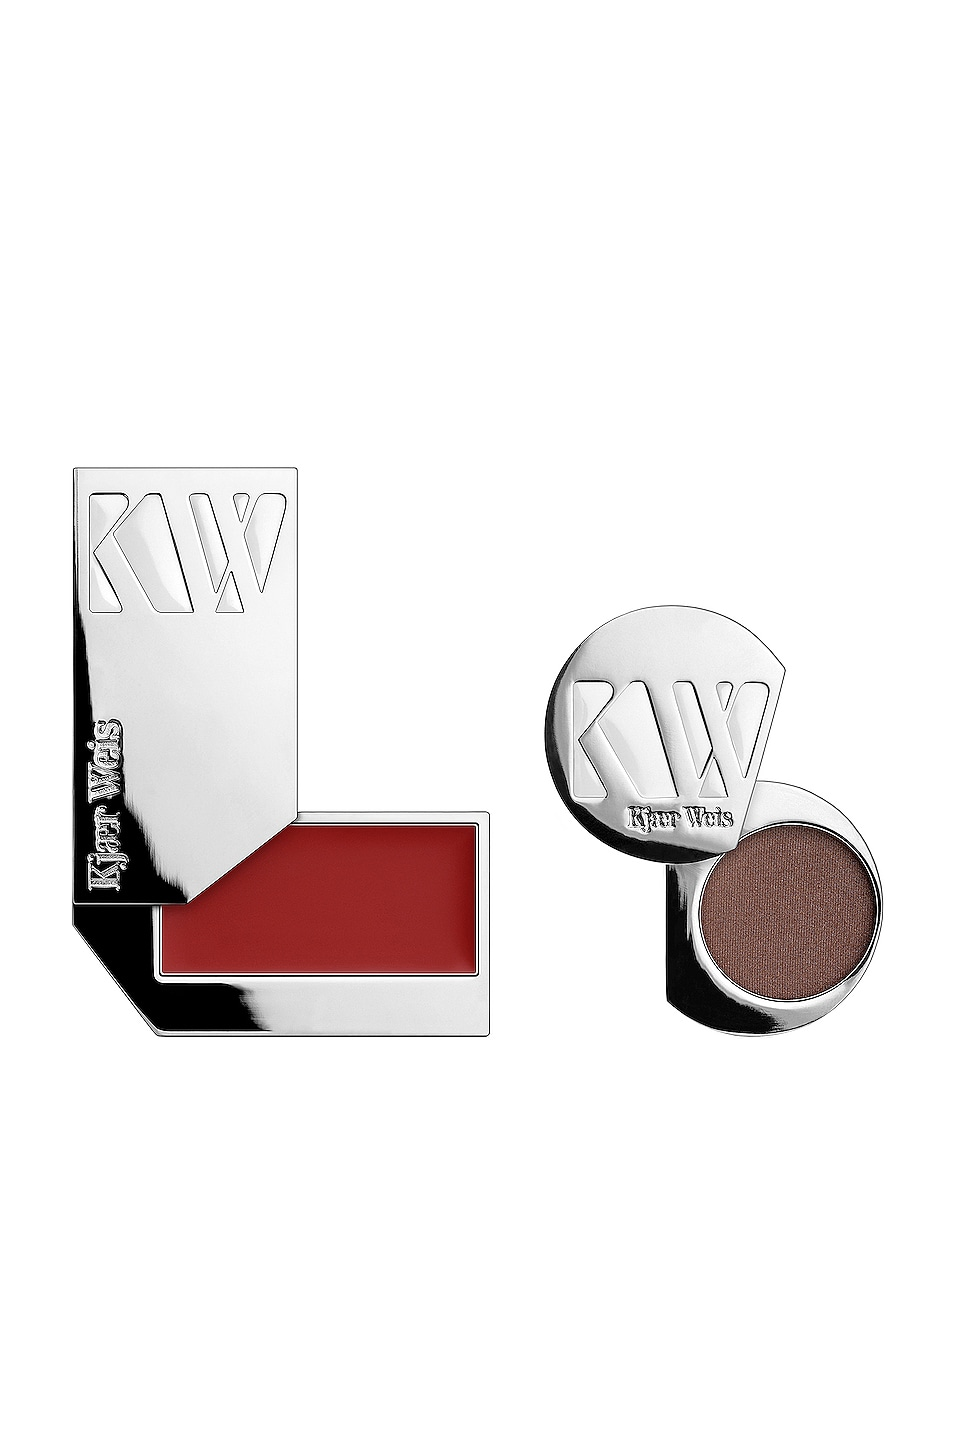 Kjaer Weis The Essential Duo No. 4 Madrid in Lover's Choice & Wisdom